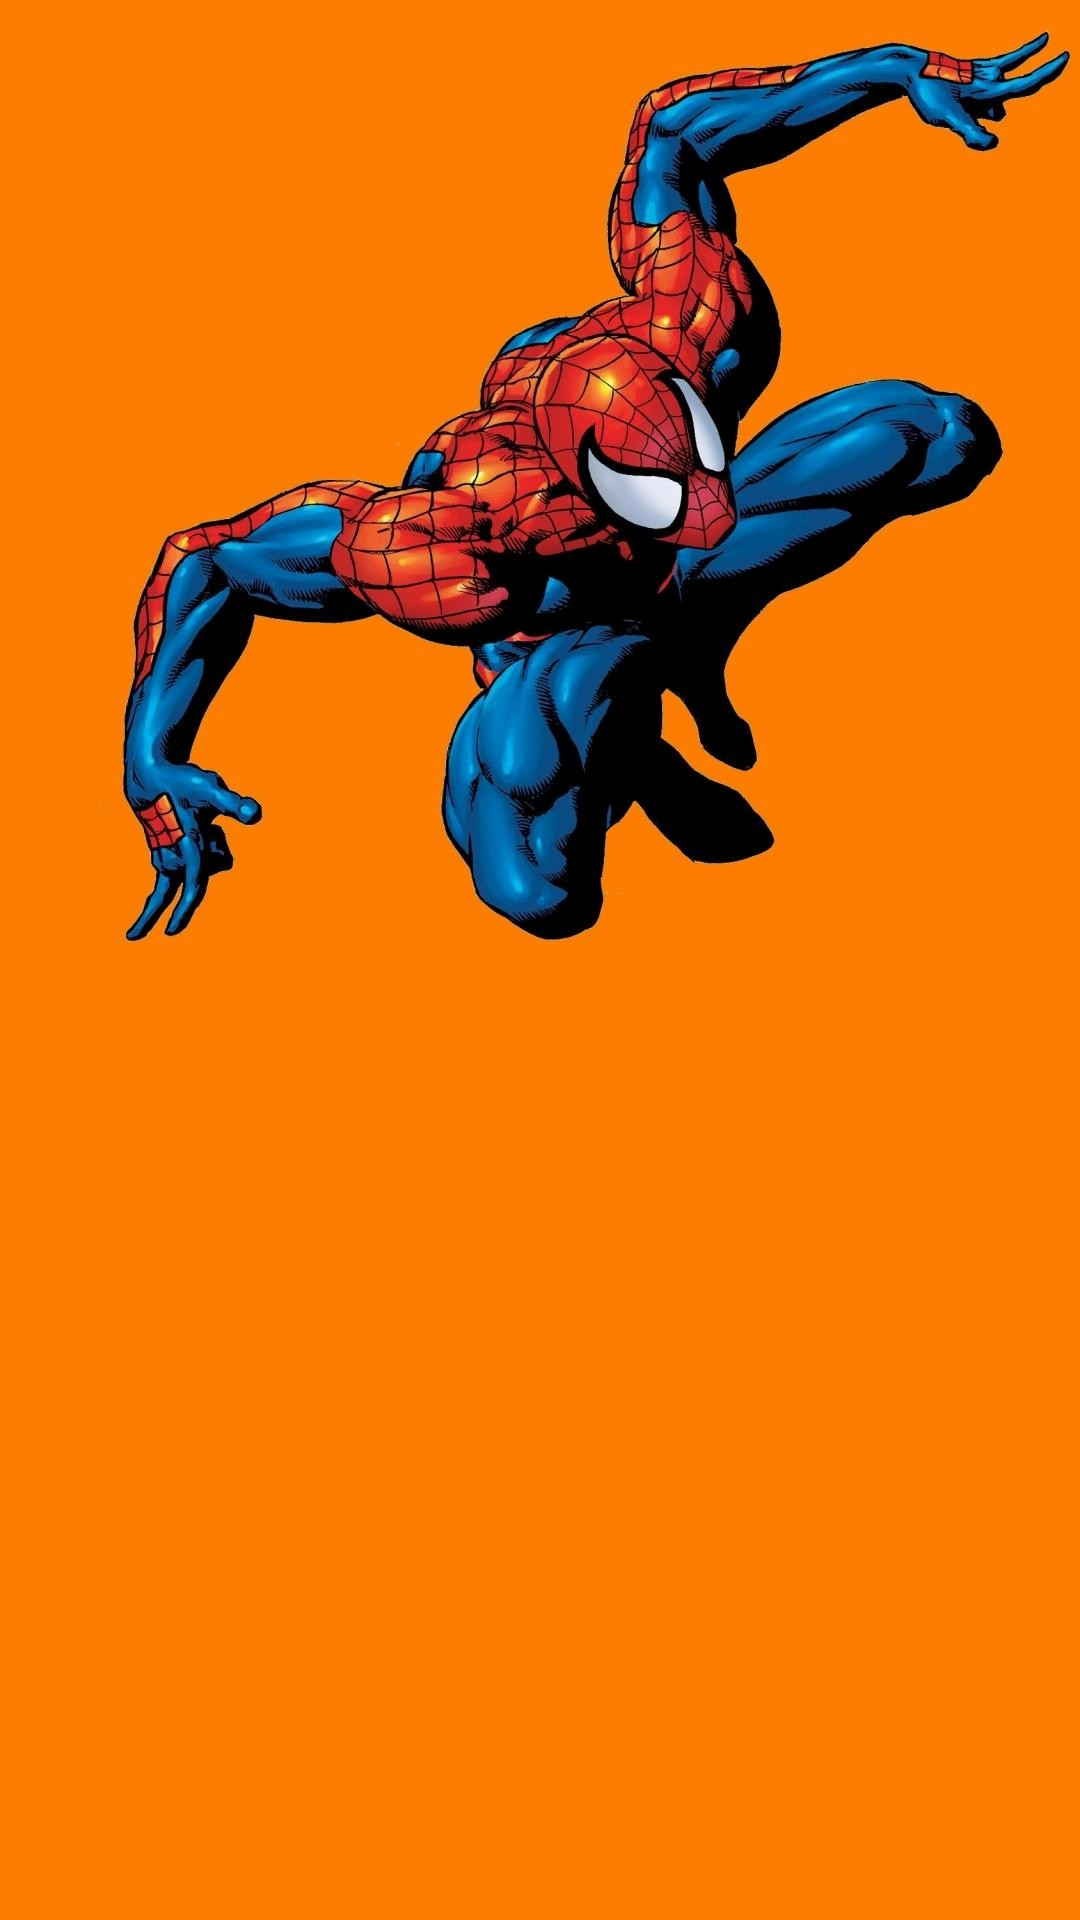 wallpaper.wiki-Spiderman-Background-HD-for-Iphone-PIC-